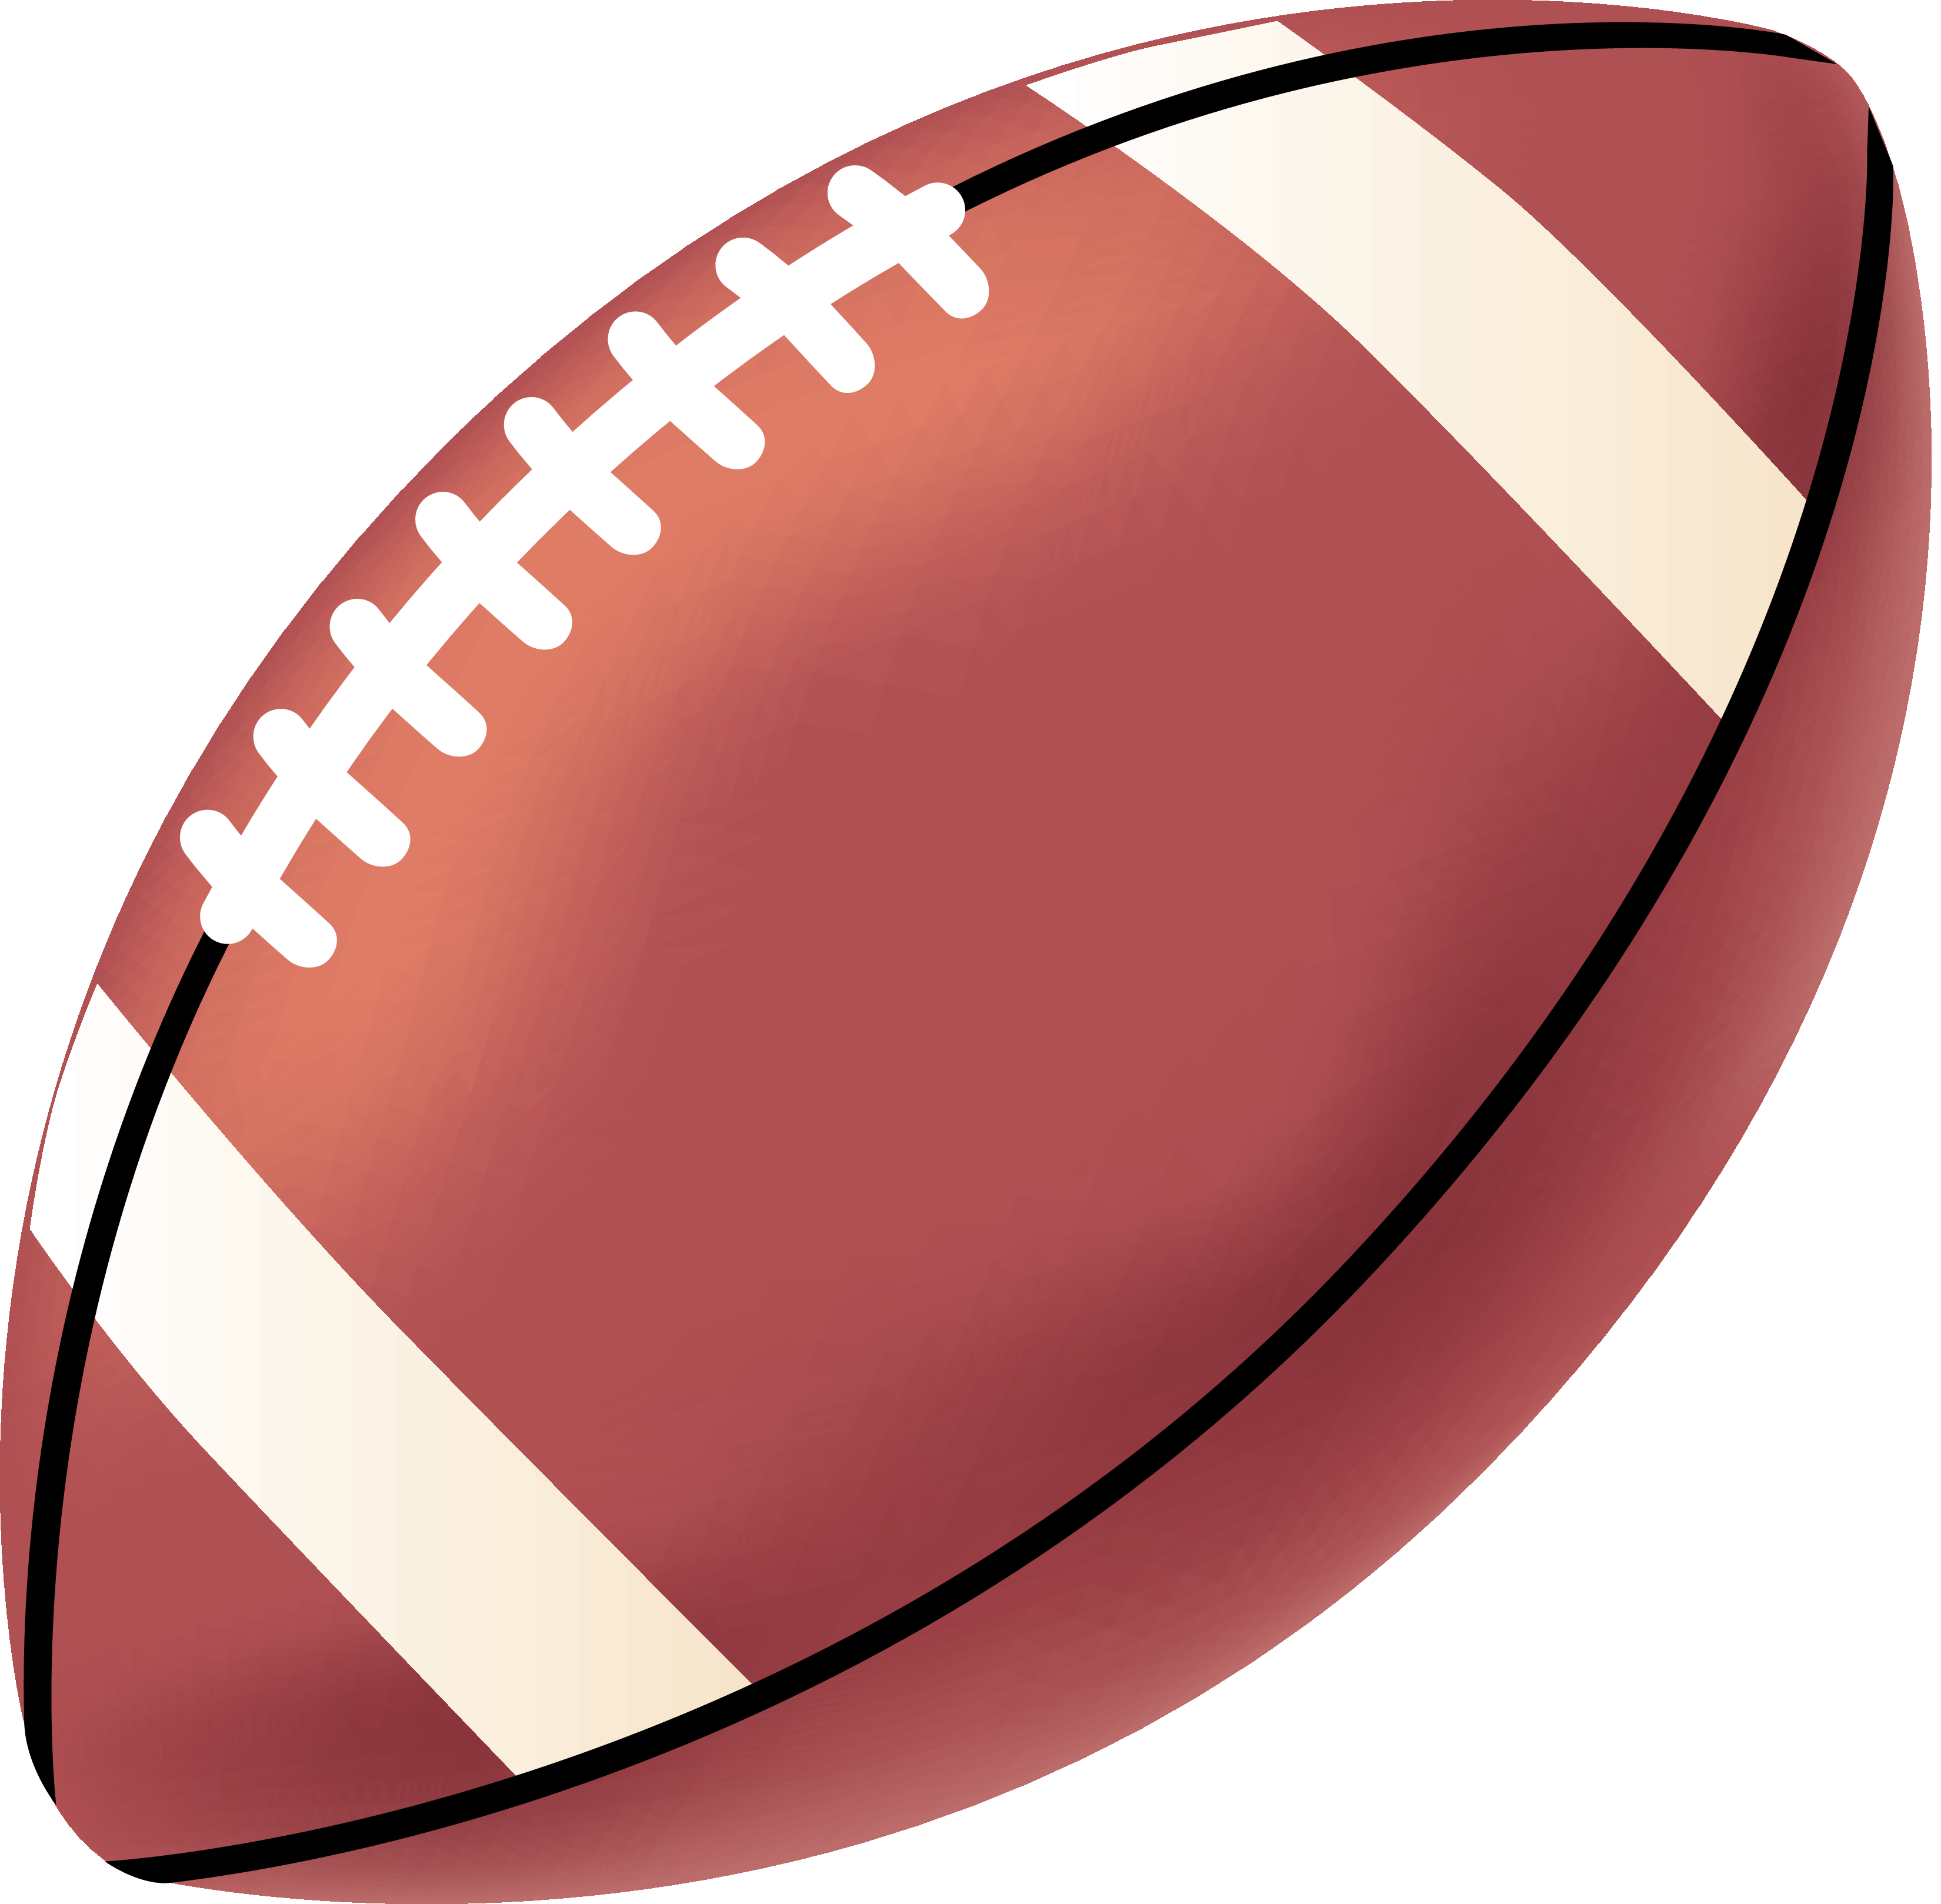 Modern football clipart jpg library Free Printable Football Clipart at GetDrawings.com | Free for ... jpg library